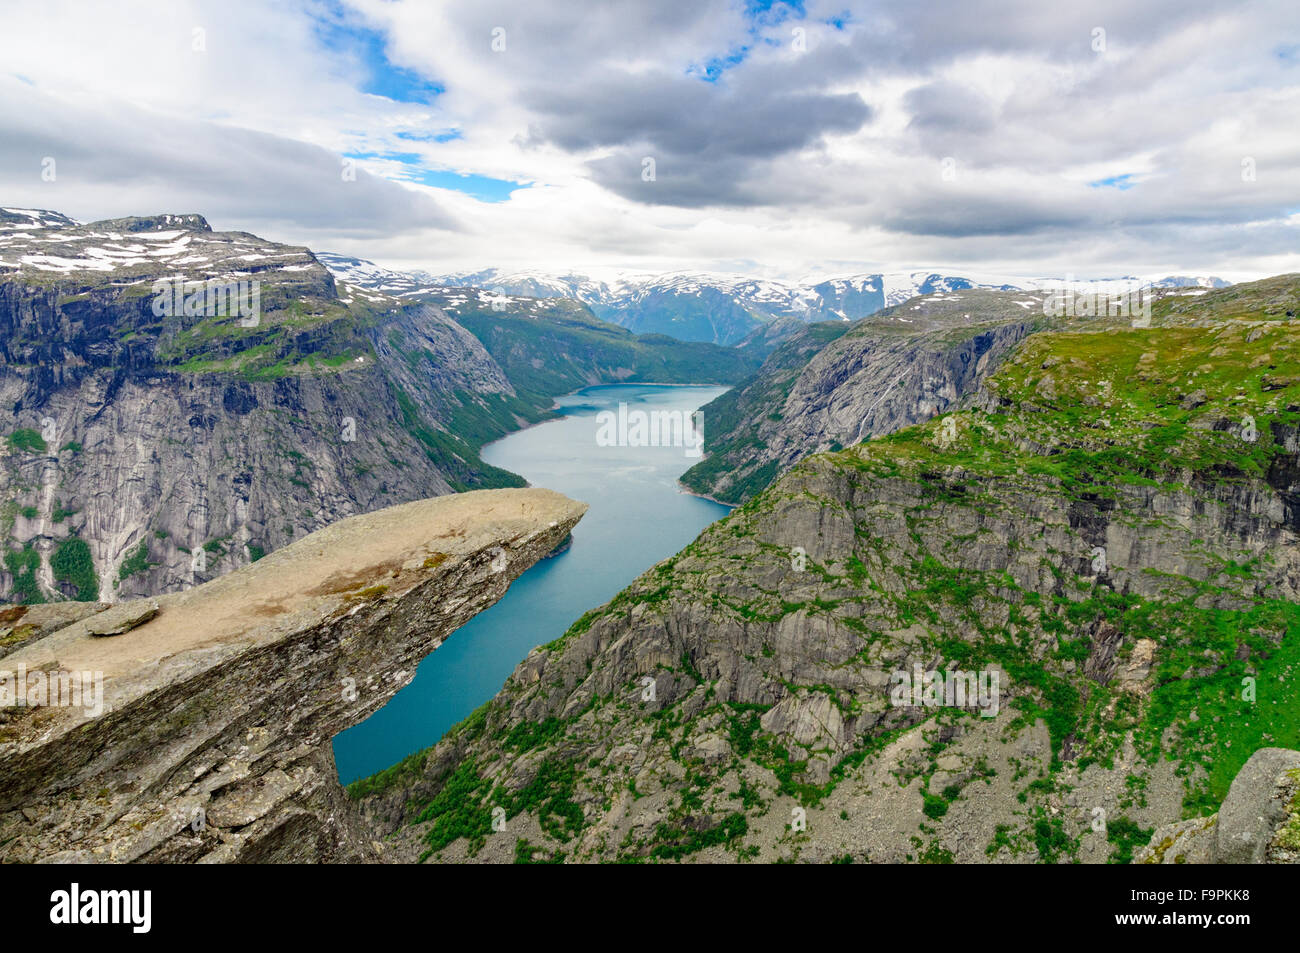 Troll's tongue (Trolltunga) rock above lake Ringedalsvatnet. One of the popular sight places in Norway - Stock Image